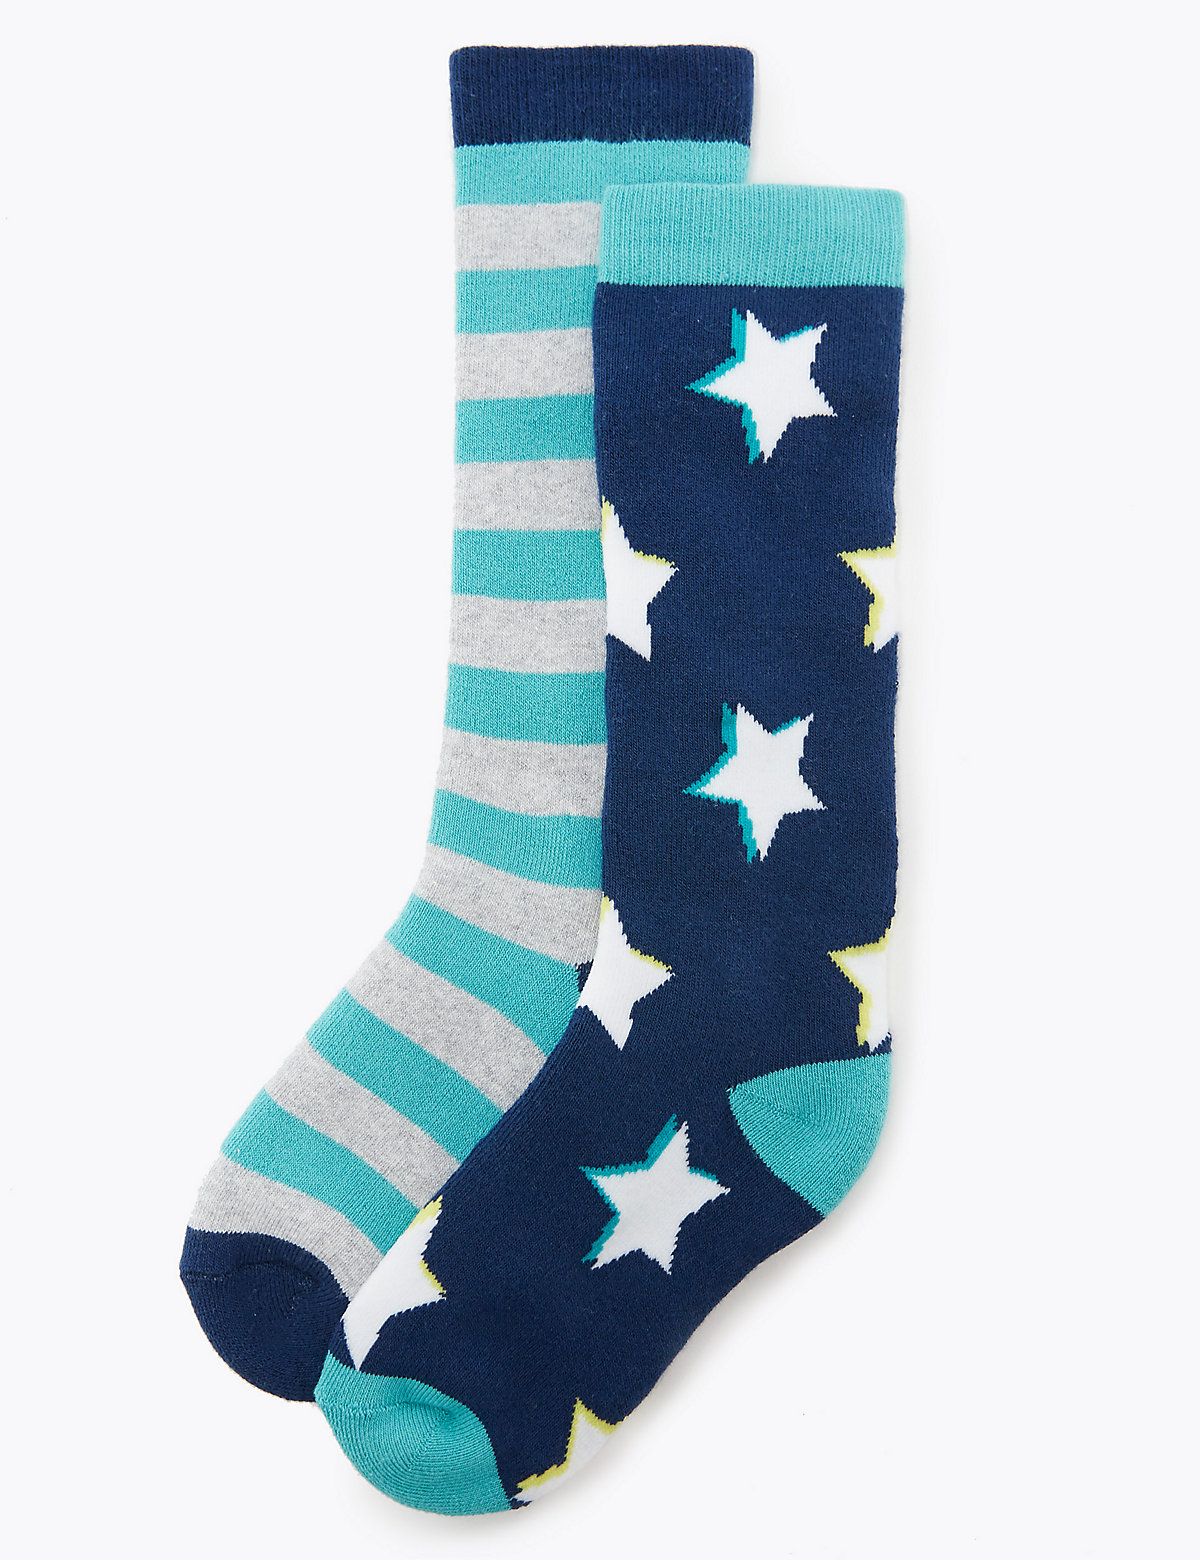 2 Pack of Freshfeet Star Print Welly Socks